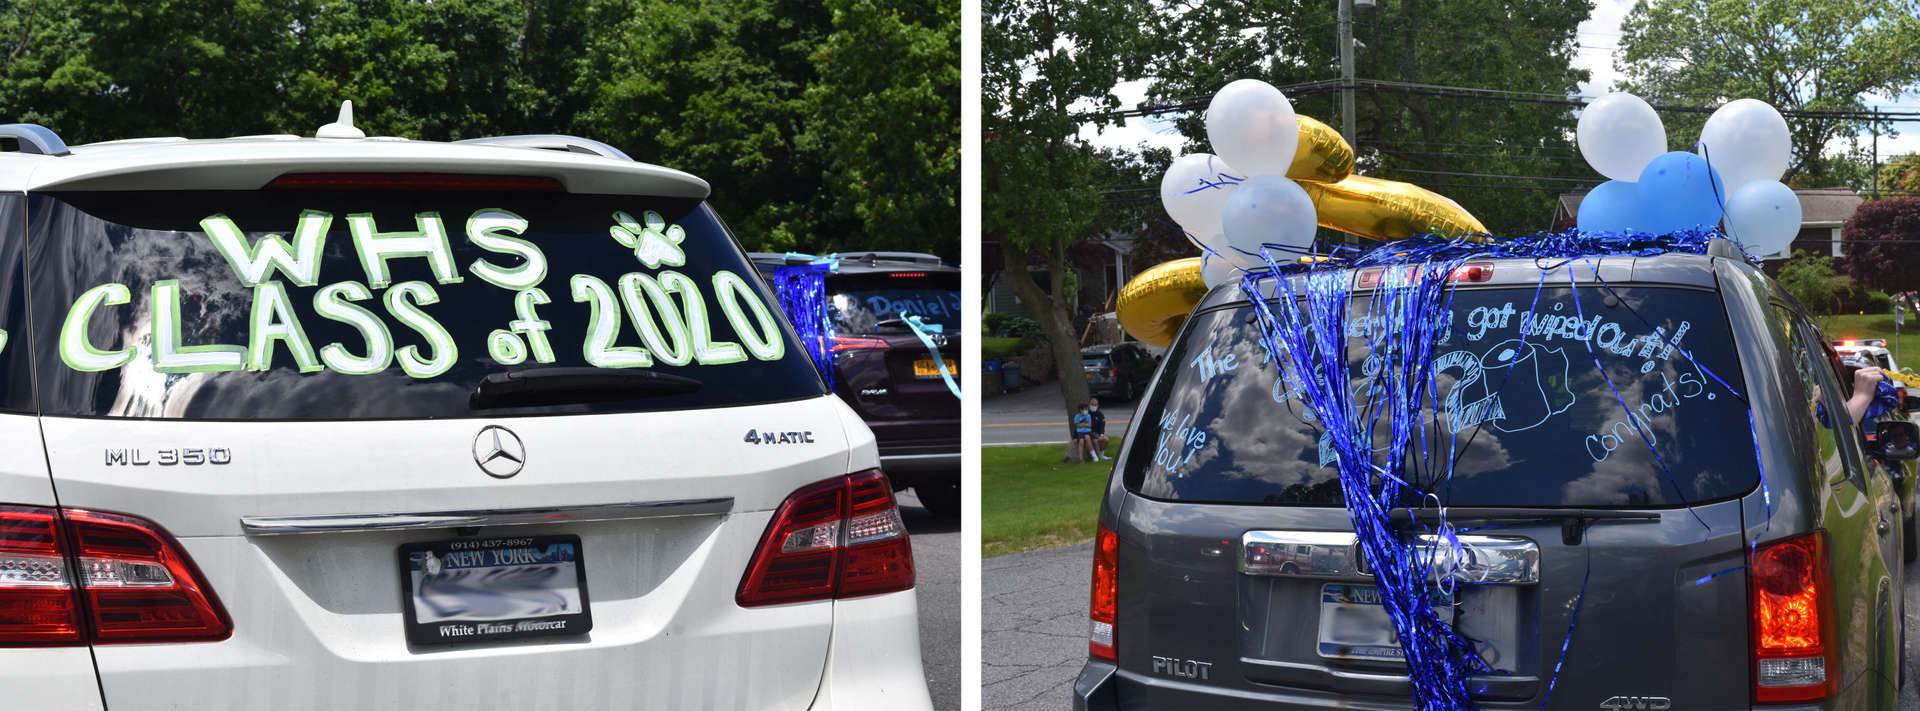 two cars decorated for graduation parade